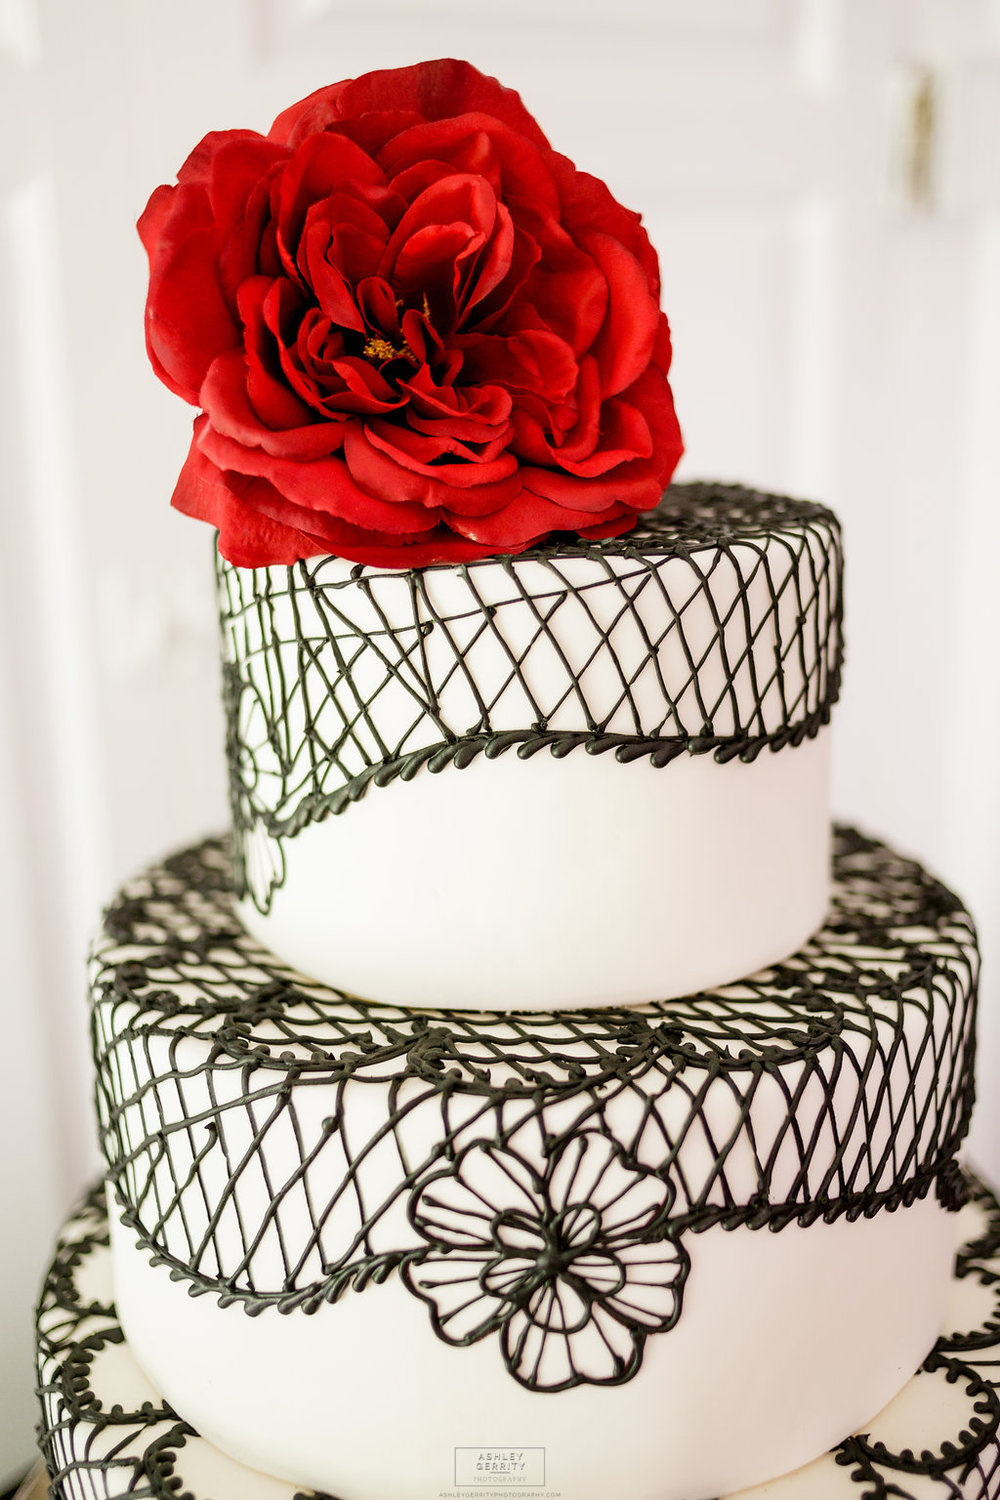 19 Spanish Rose Wedding Cake Brooklyn Girl Bakery Bolingbroke Mansion.jpg